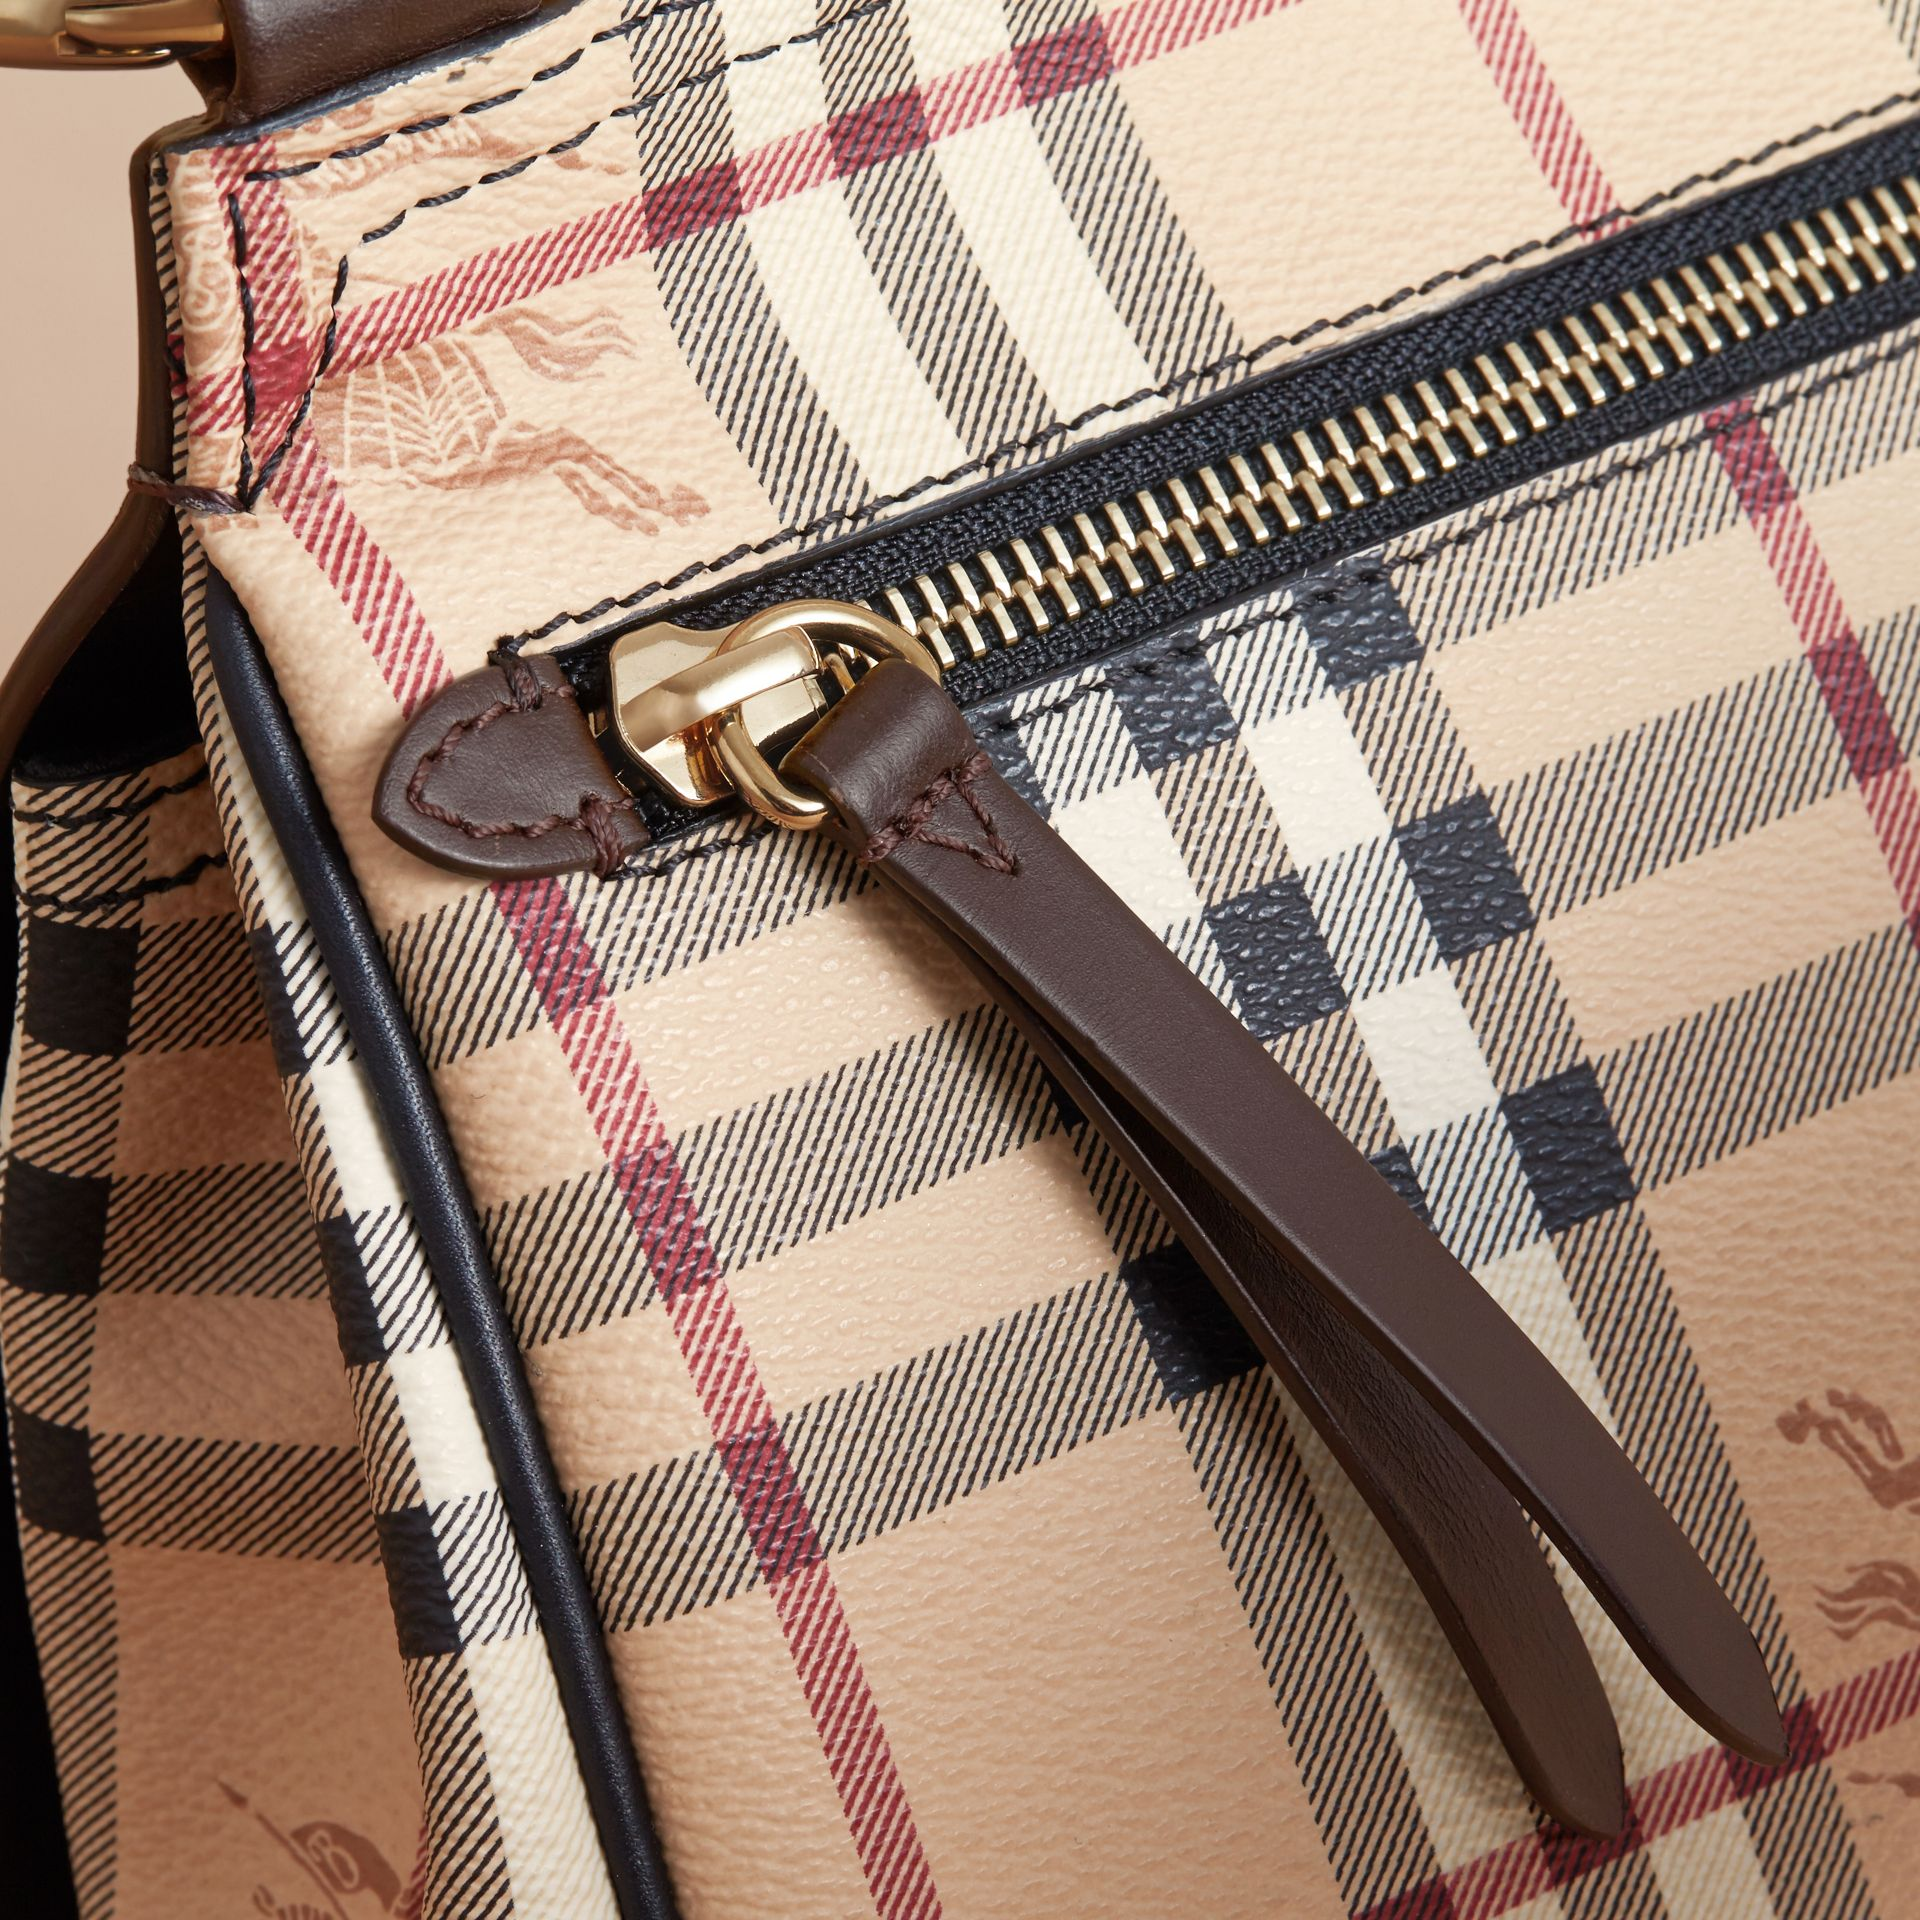 The Bridle Crossbody Bag in Haymarket Check - Women | Burberry - gallery image 6